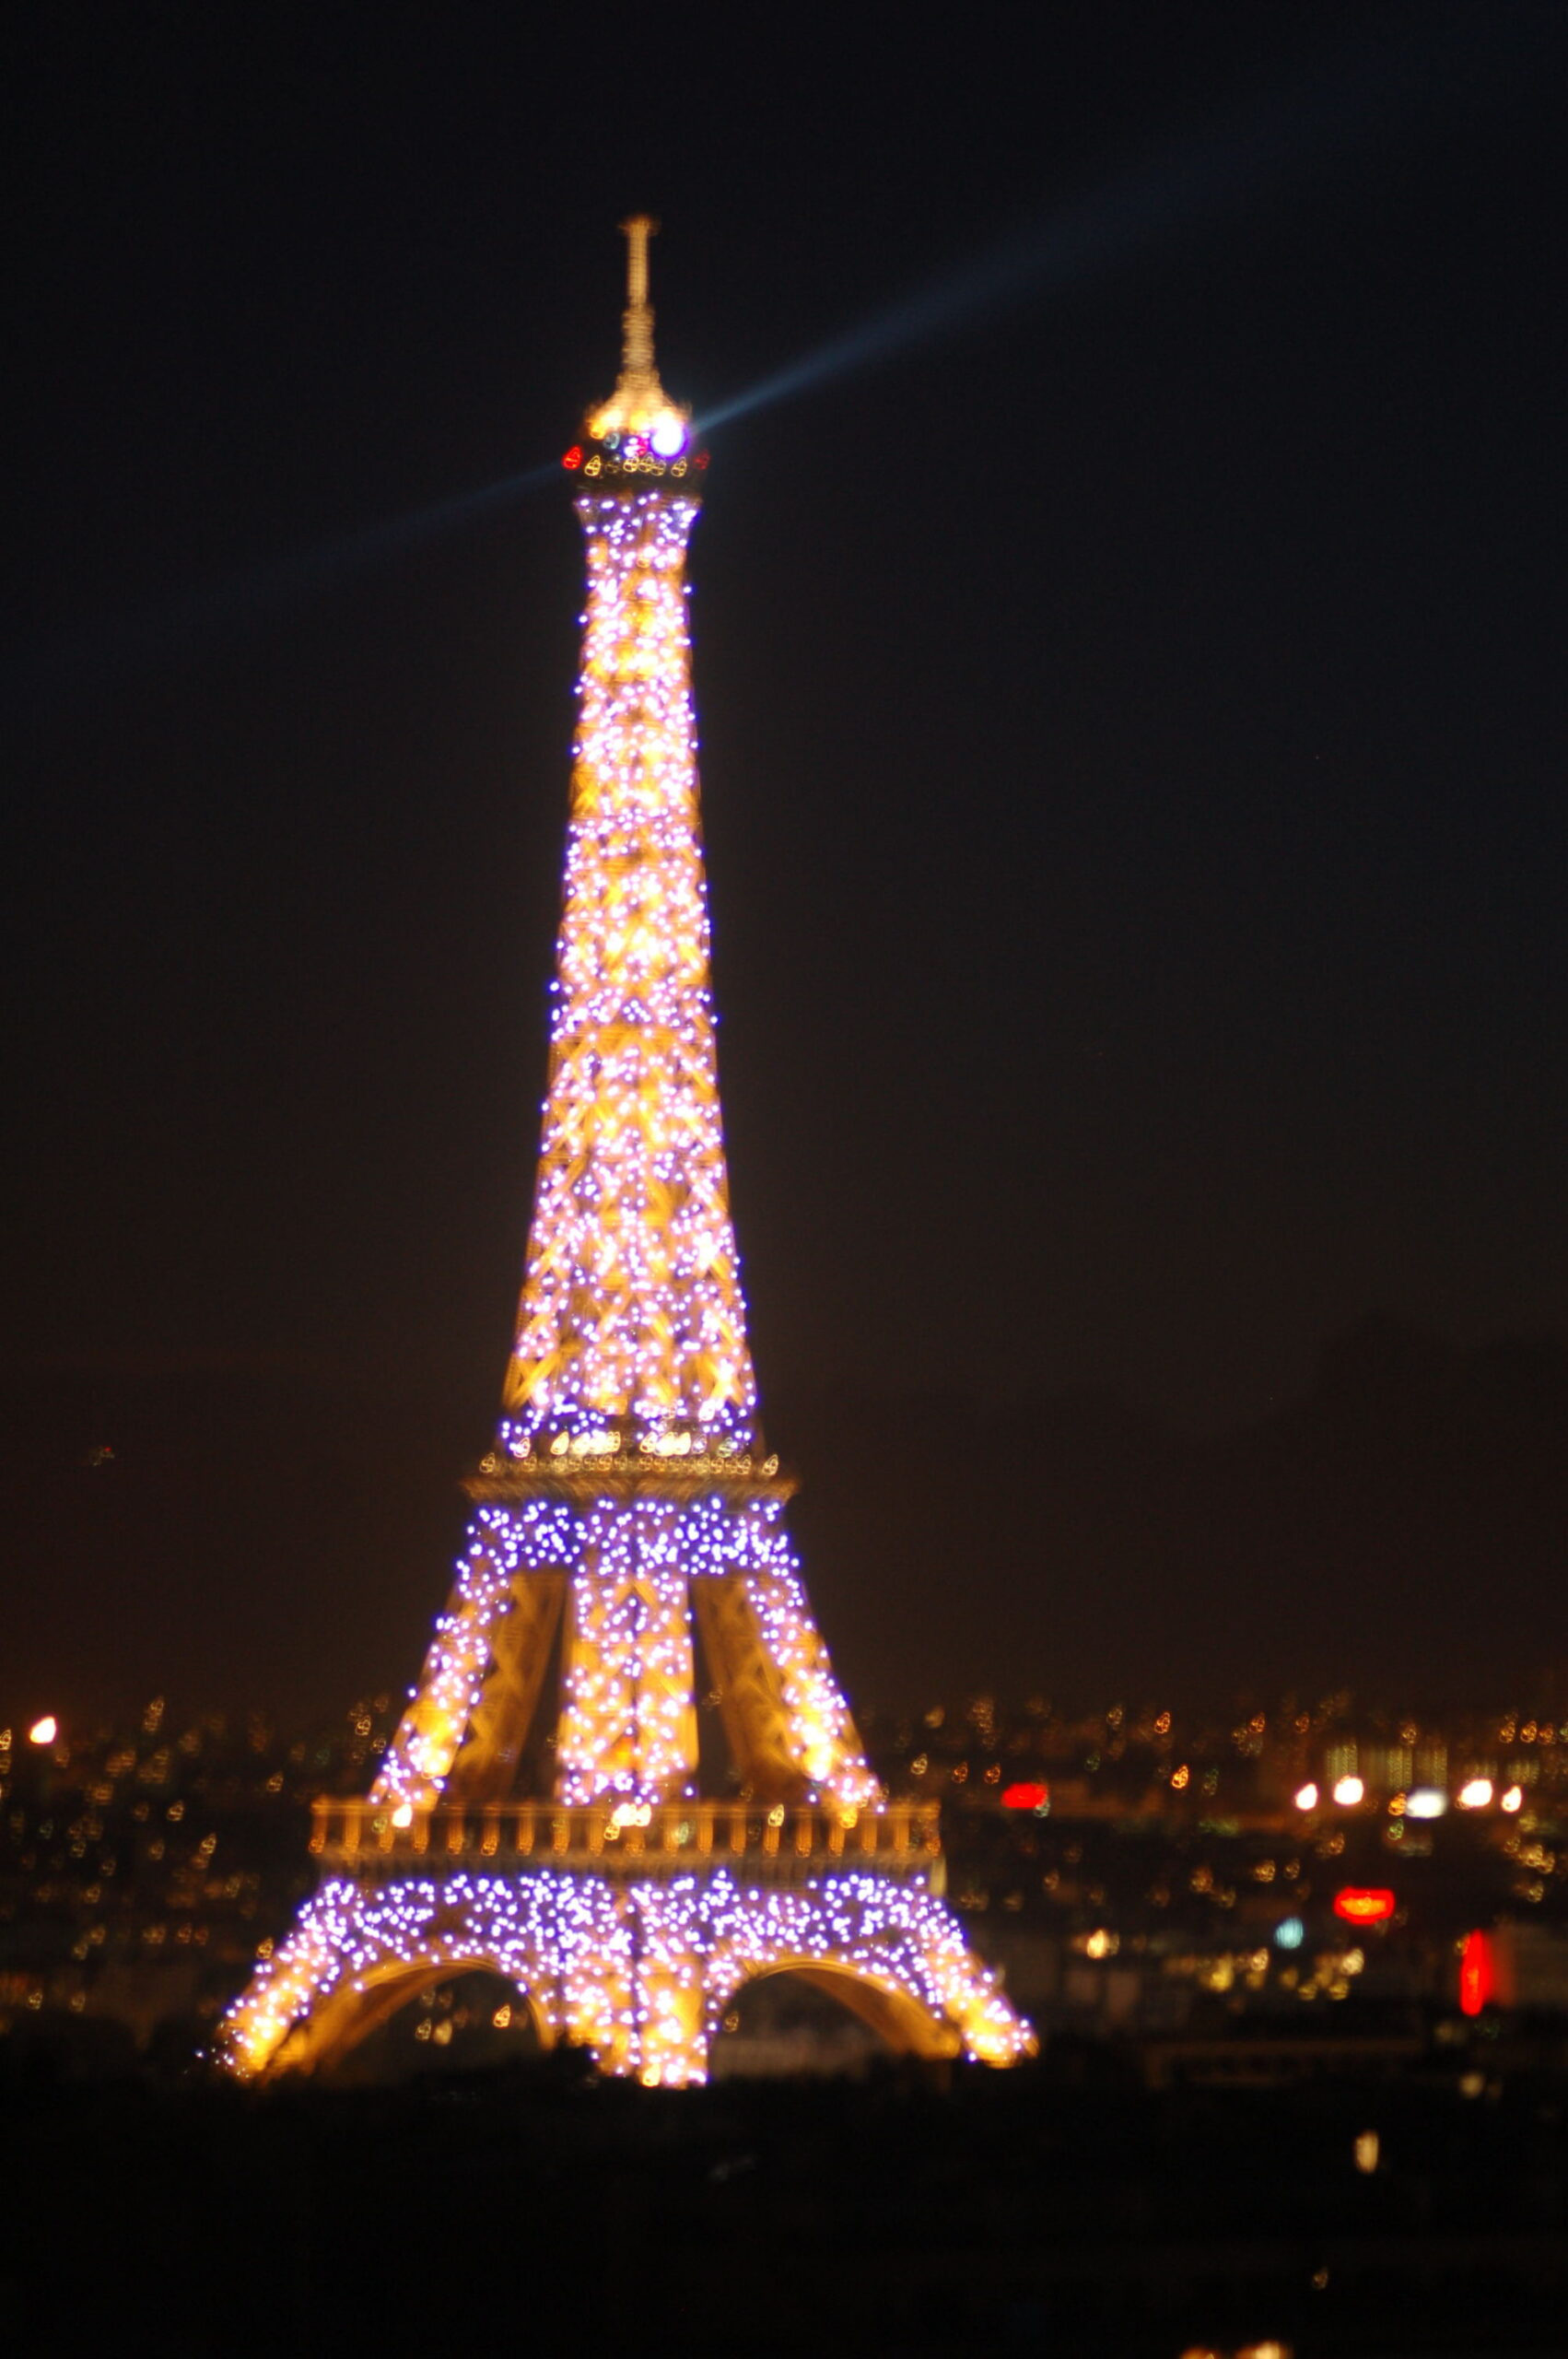 eiffel tower at night lit up